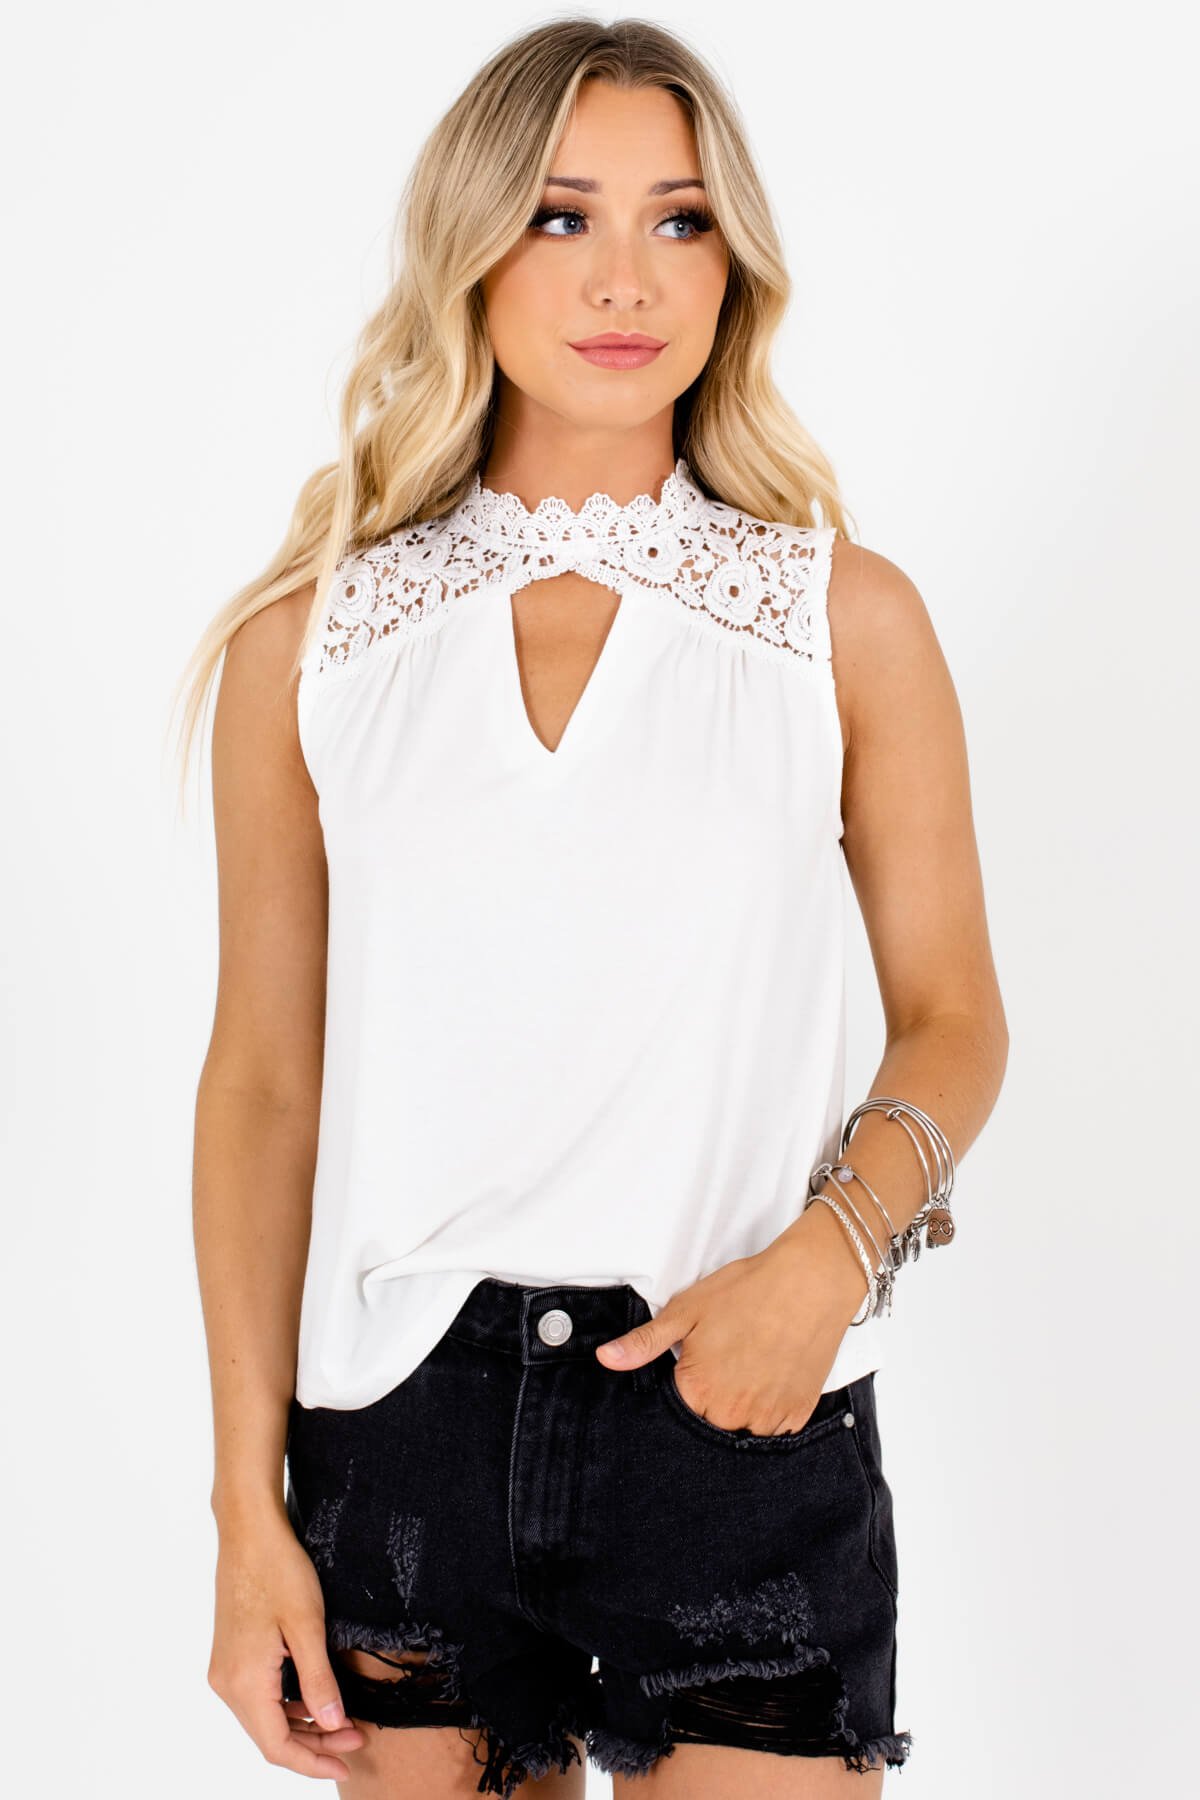 White Lace High Neck Cutout Tank Tops Affordable Online Boutique